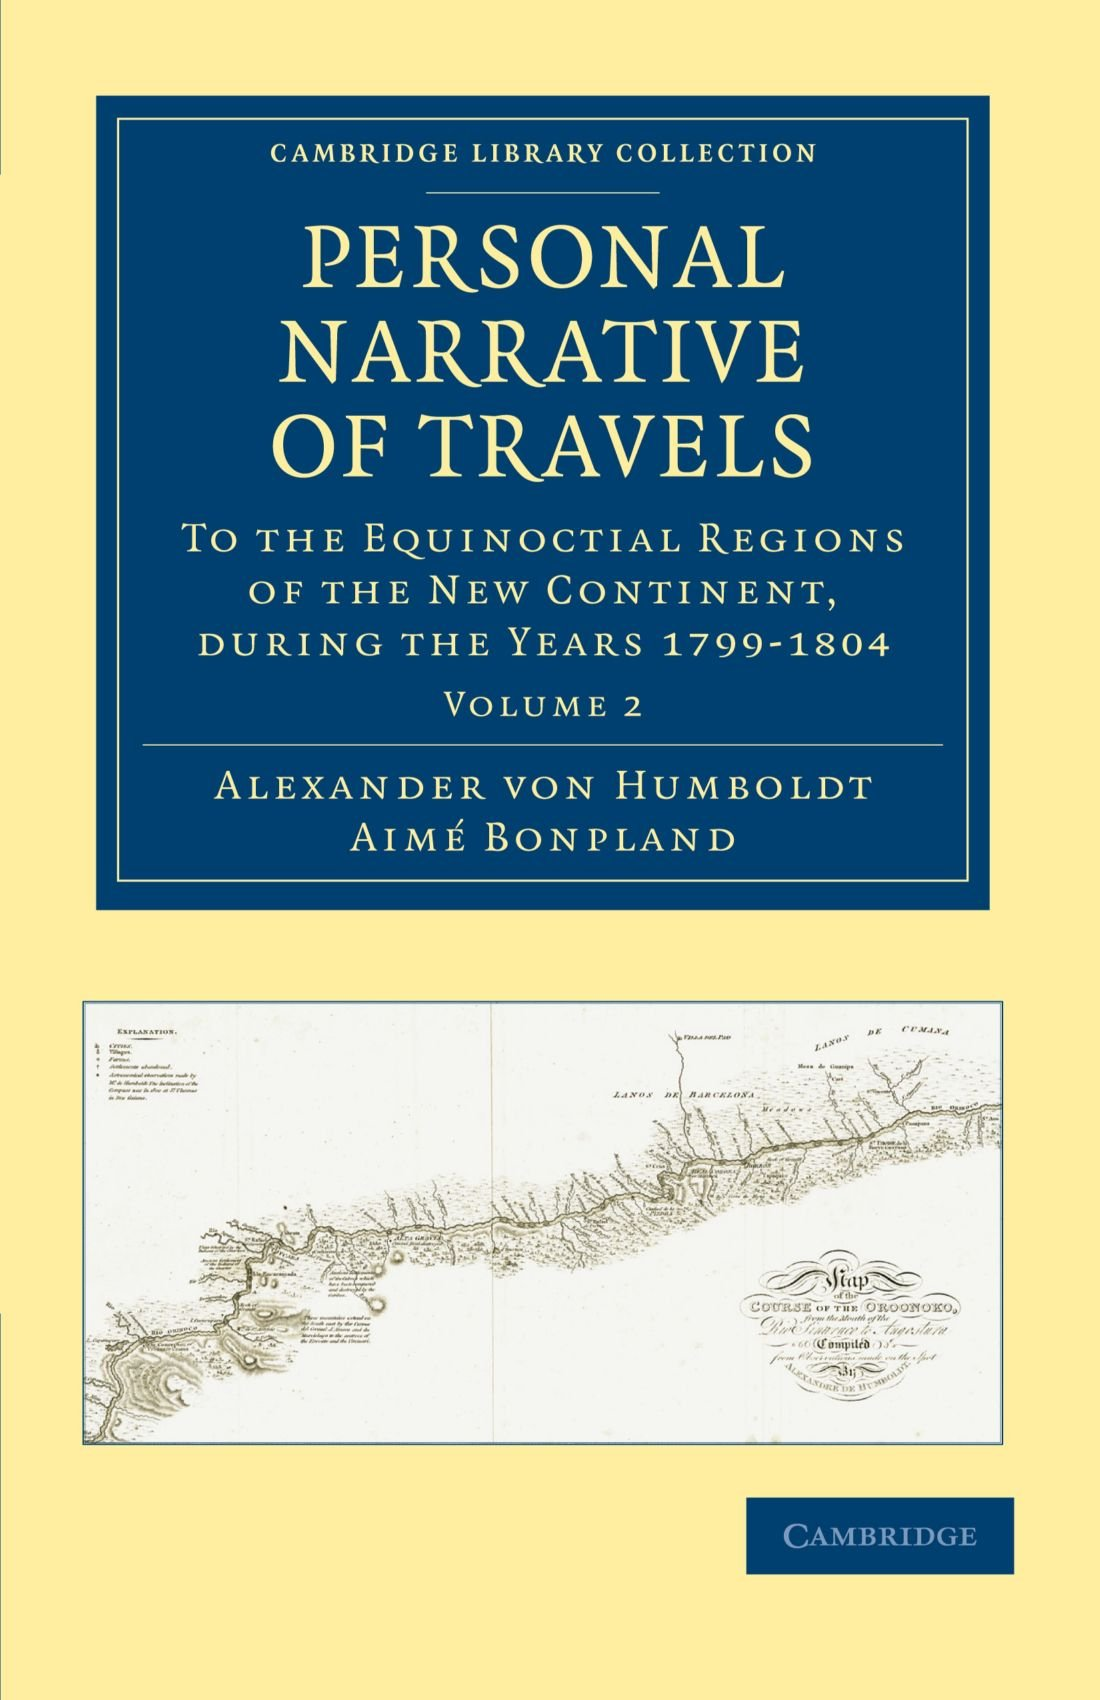 Personal Narrative of Travels to the Equinoctial Regions of the New Continent: During the Years 1799-1804 (Cambridge Library Collection - Latin American Studies) (Volume 2) pdf